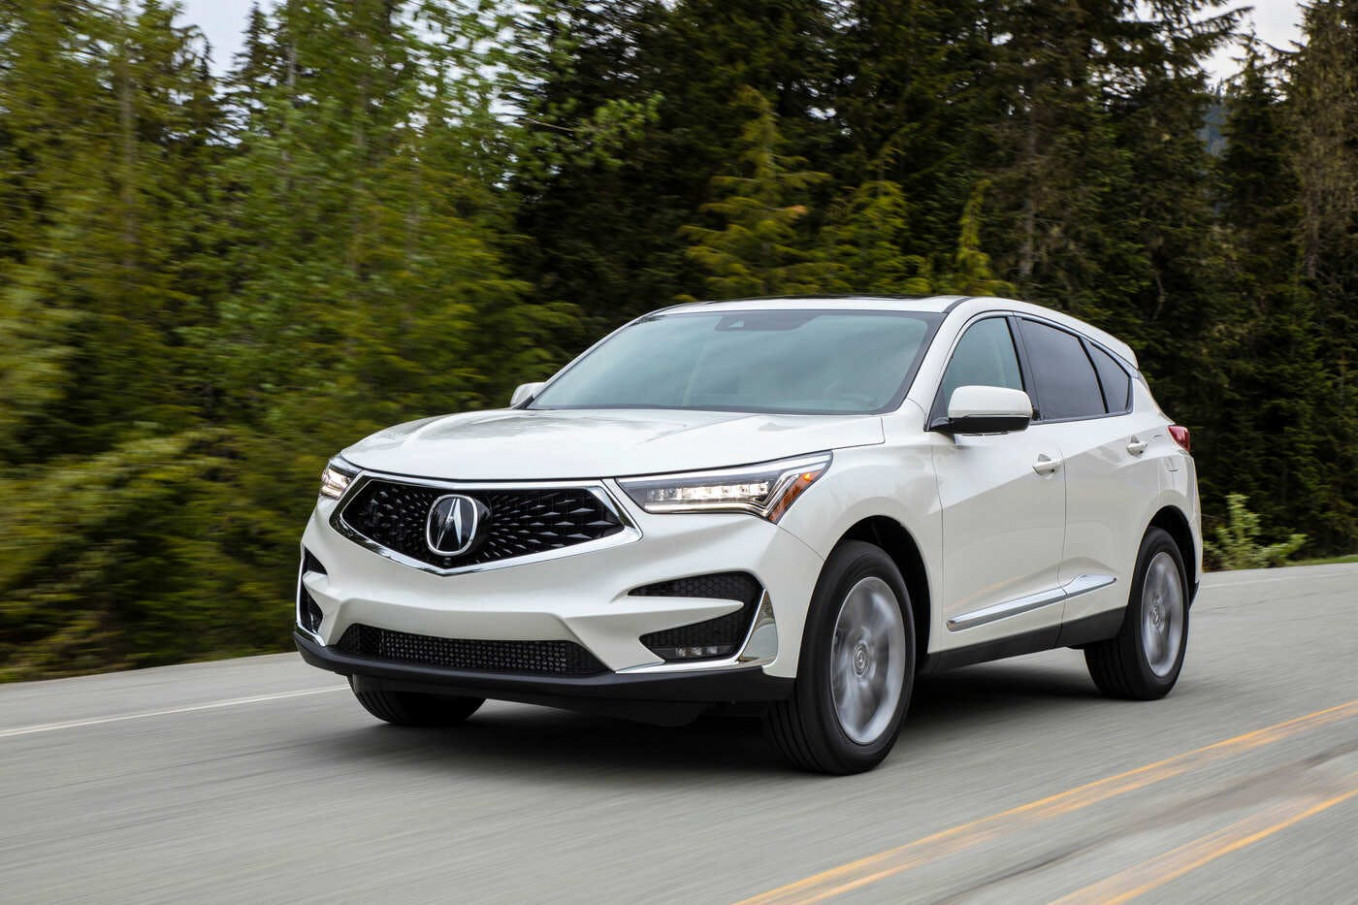 8 Acura RDX Reviews, Pricing & Pictures | TrueCar - acura rdx 2020 lane keep assist